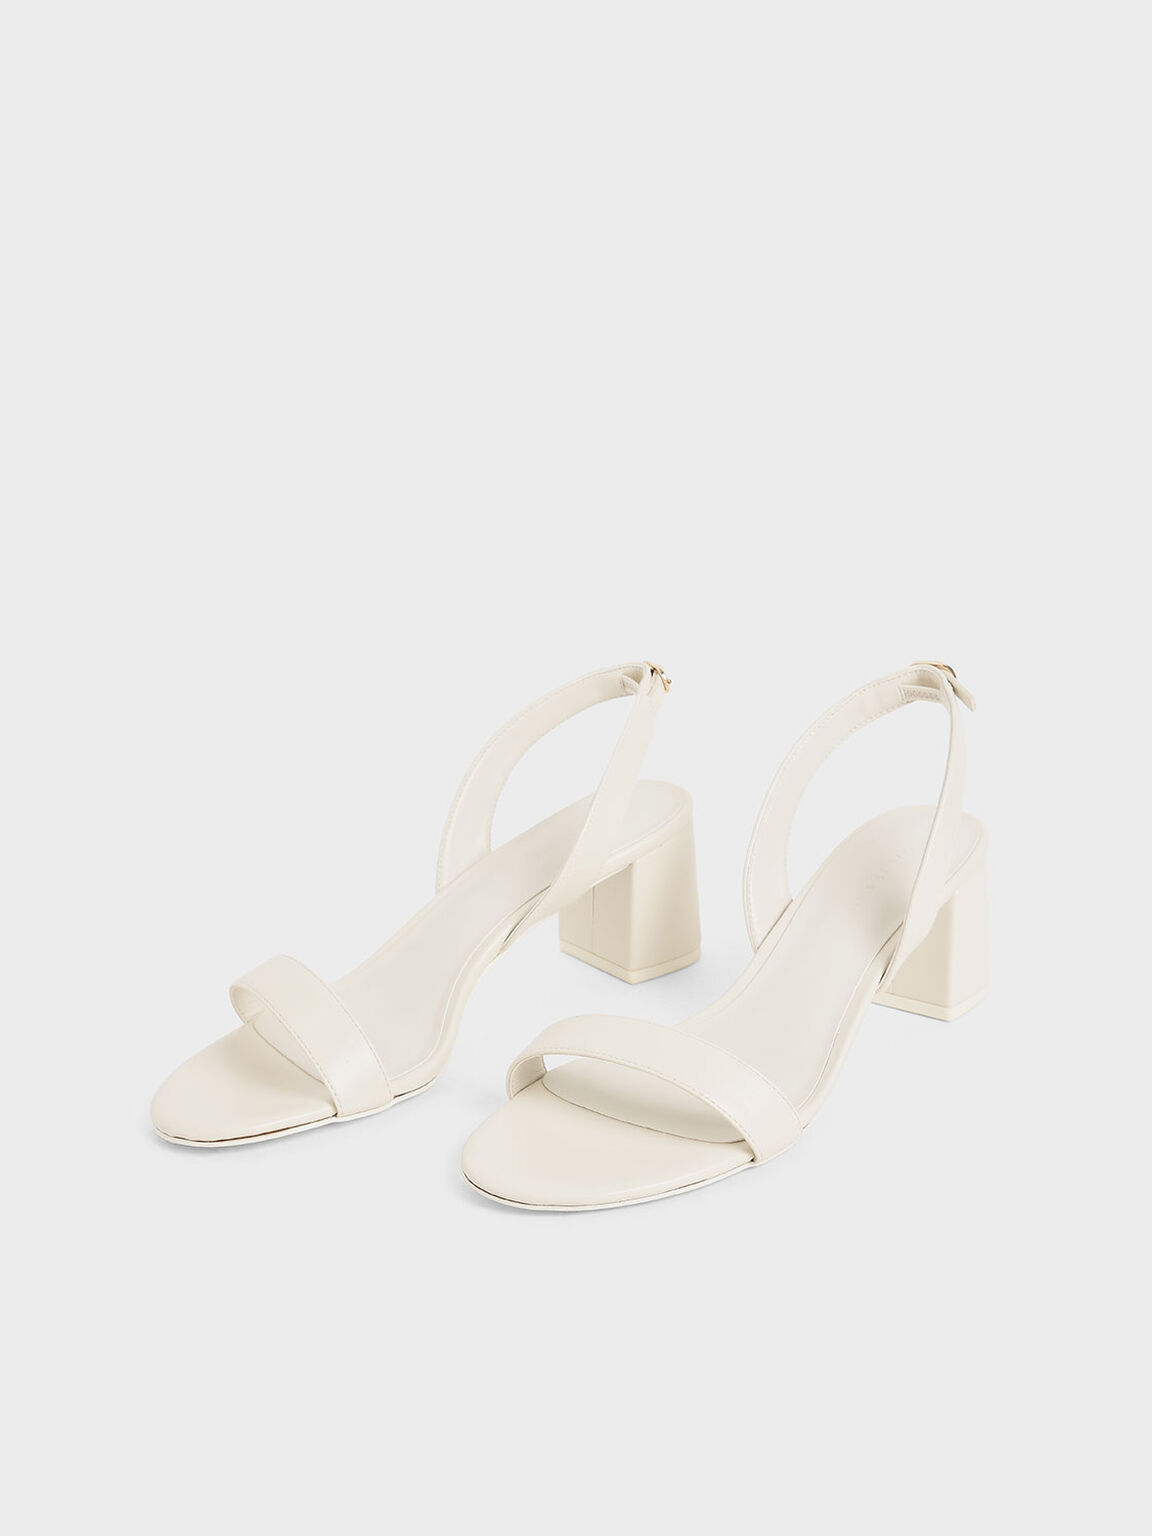 Slingback Heeled Sandals, White, hi-res